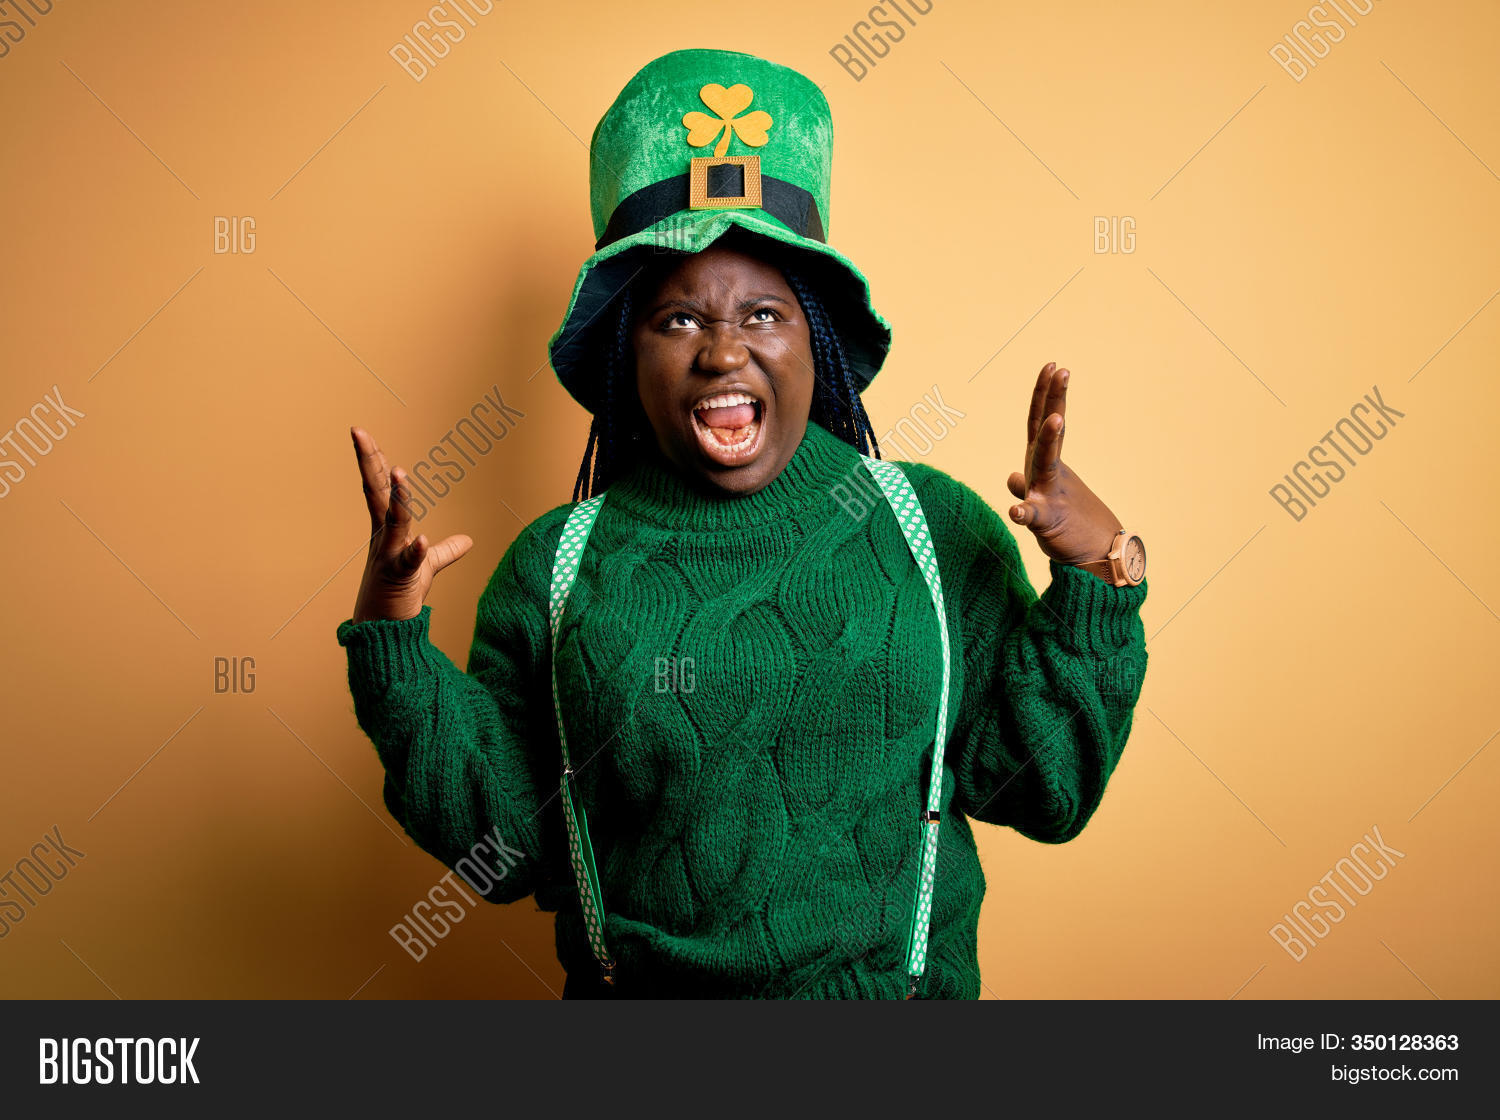 Plus size african american woman with braids wearing green hat with clover on st patricks day crazy and mad shouting and yelling with aggressive expression and arms raised. Frustration concept.